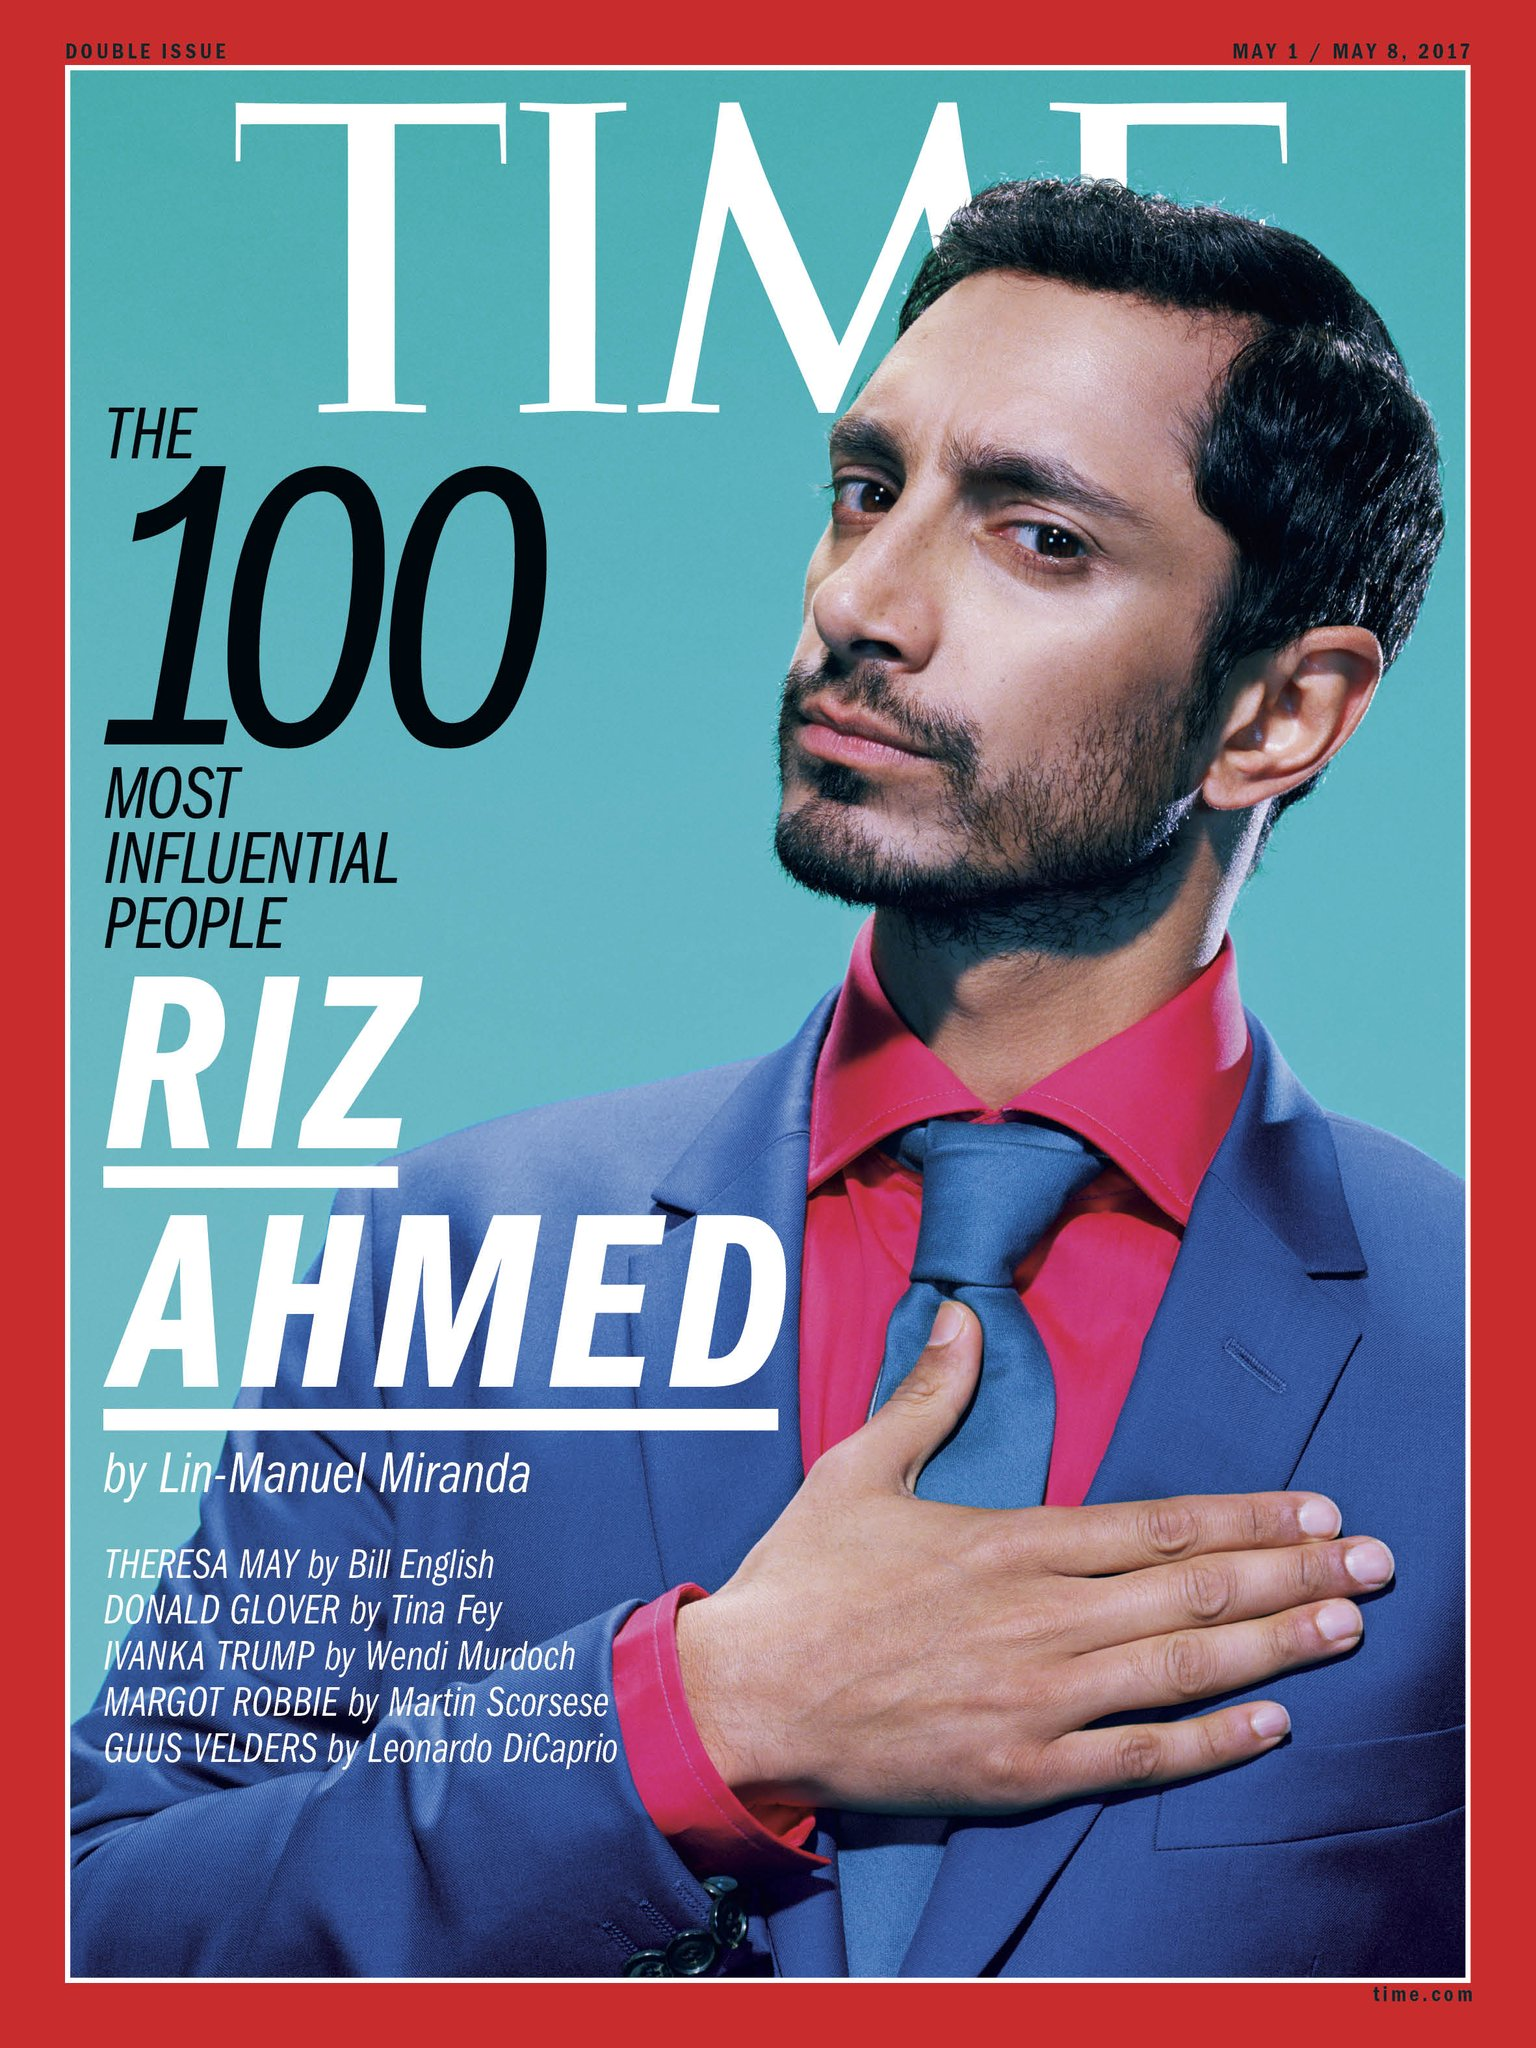 ".@Lin_Manuel on Riz Ahmed: ""To know him is to be inspired, engaged and ready to create alongside him"" #TIME100 https://t.co/RwGqsF24qi https://t.co/BkWc14UBzP"